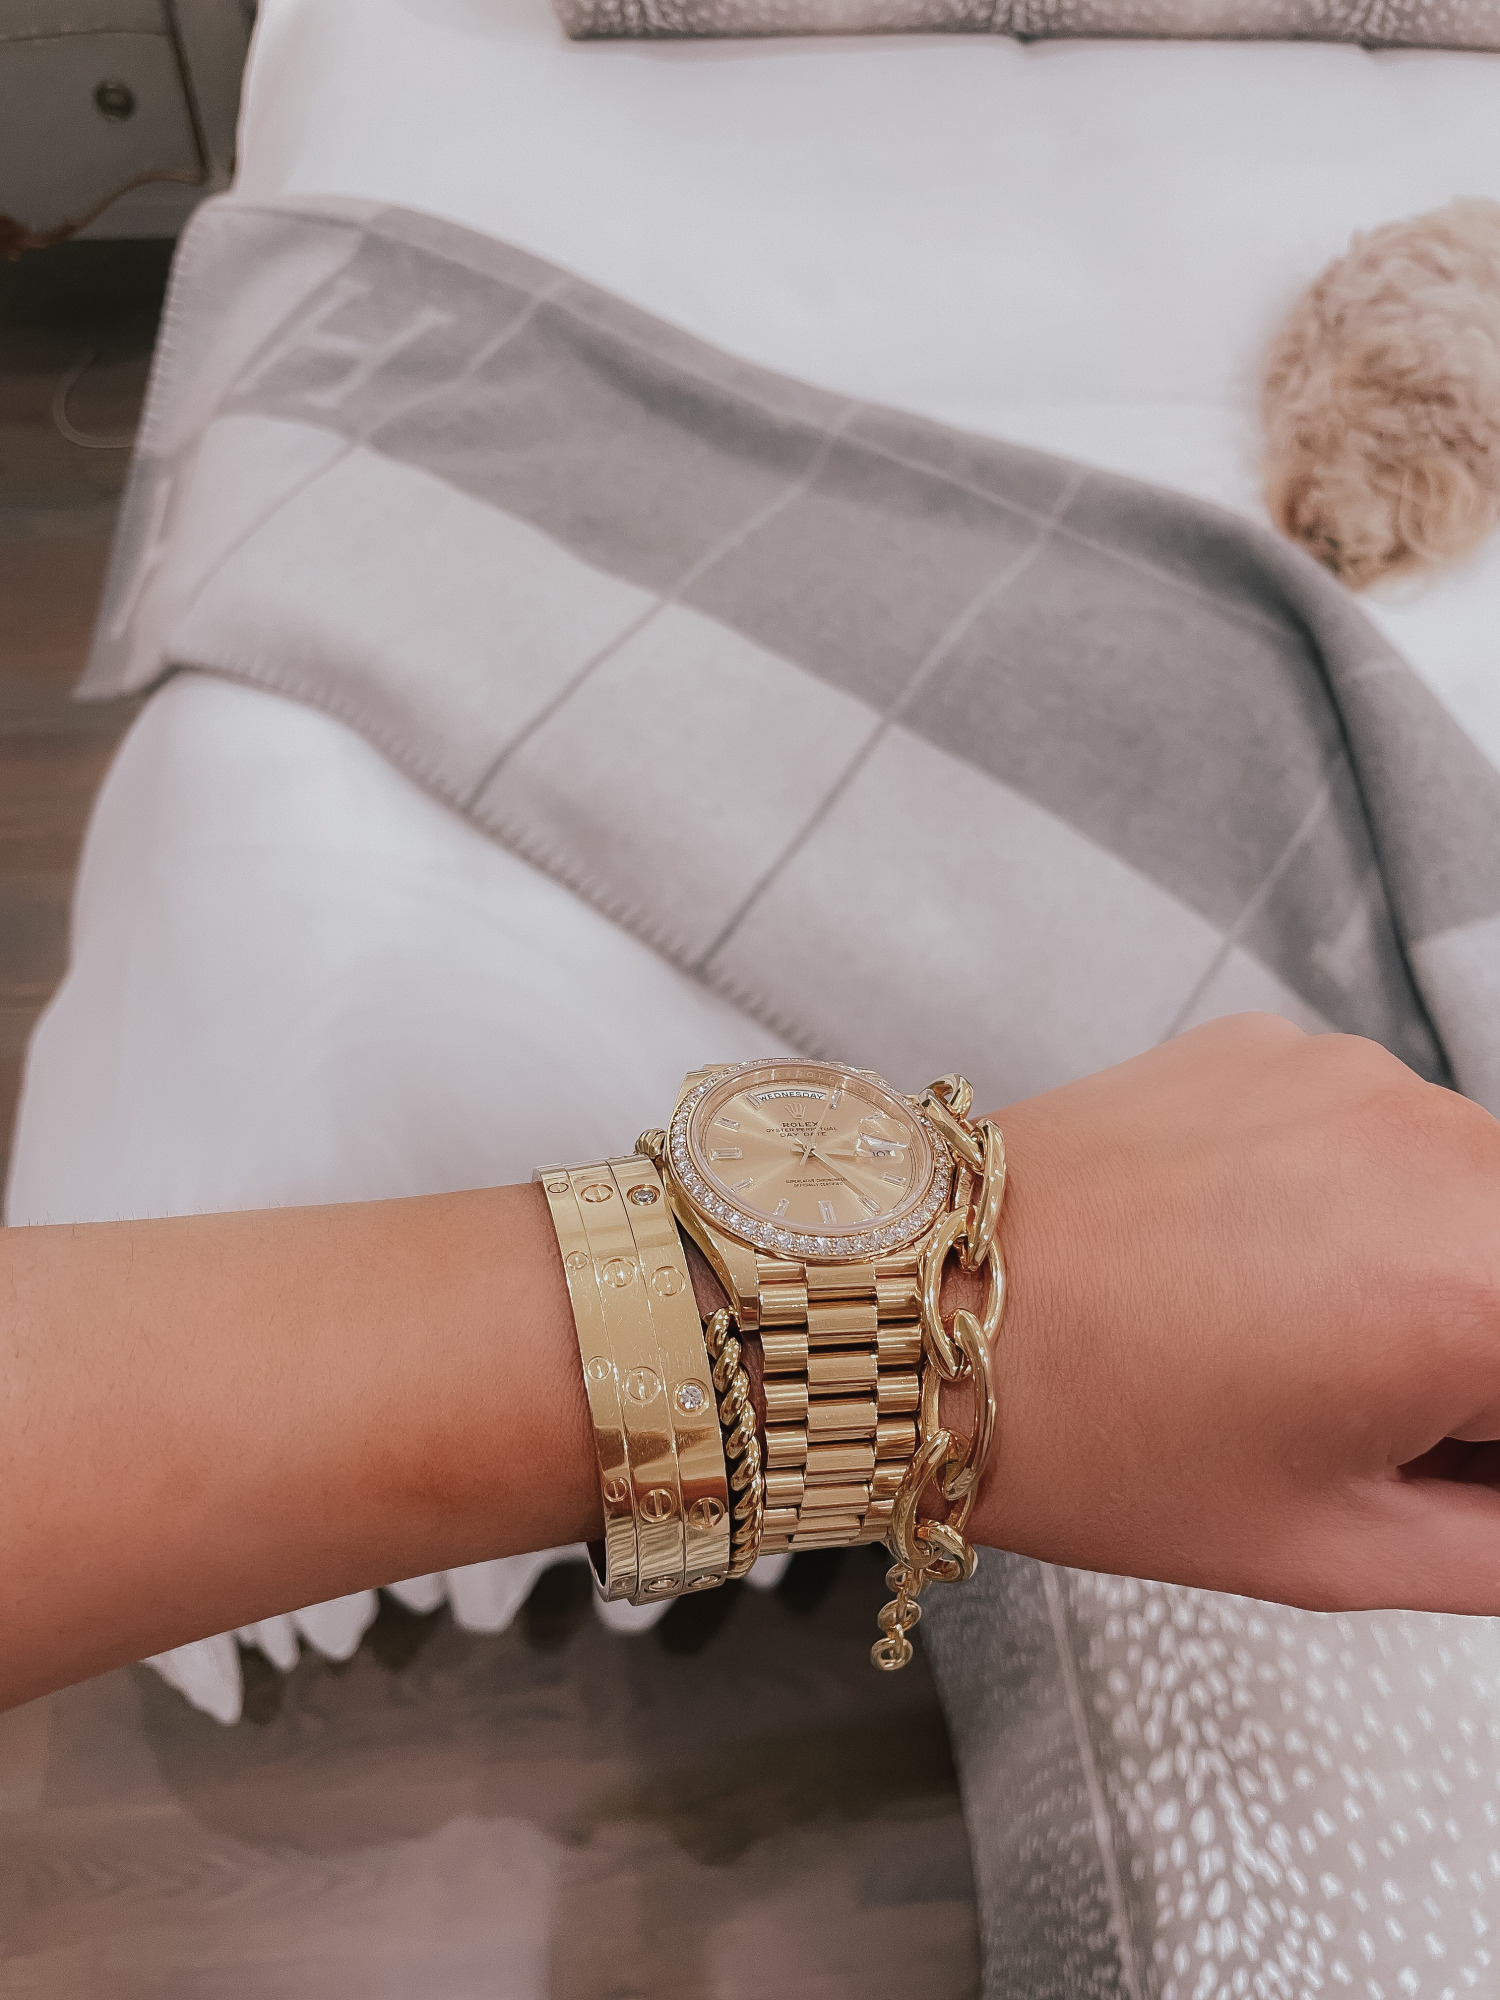 Vici Try On by popular US fashion blog, The Sweetest Thing: image of Emily Gemma wearing gold Cartier bracelets and a gold Rolex watch.